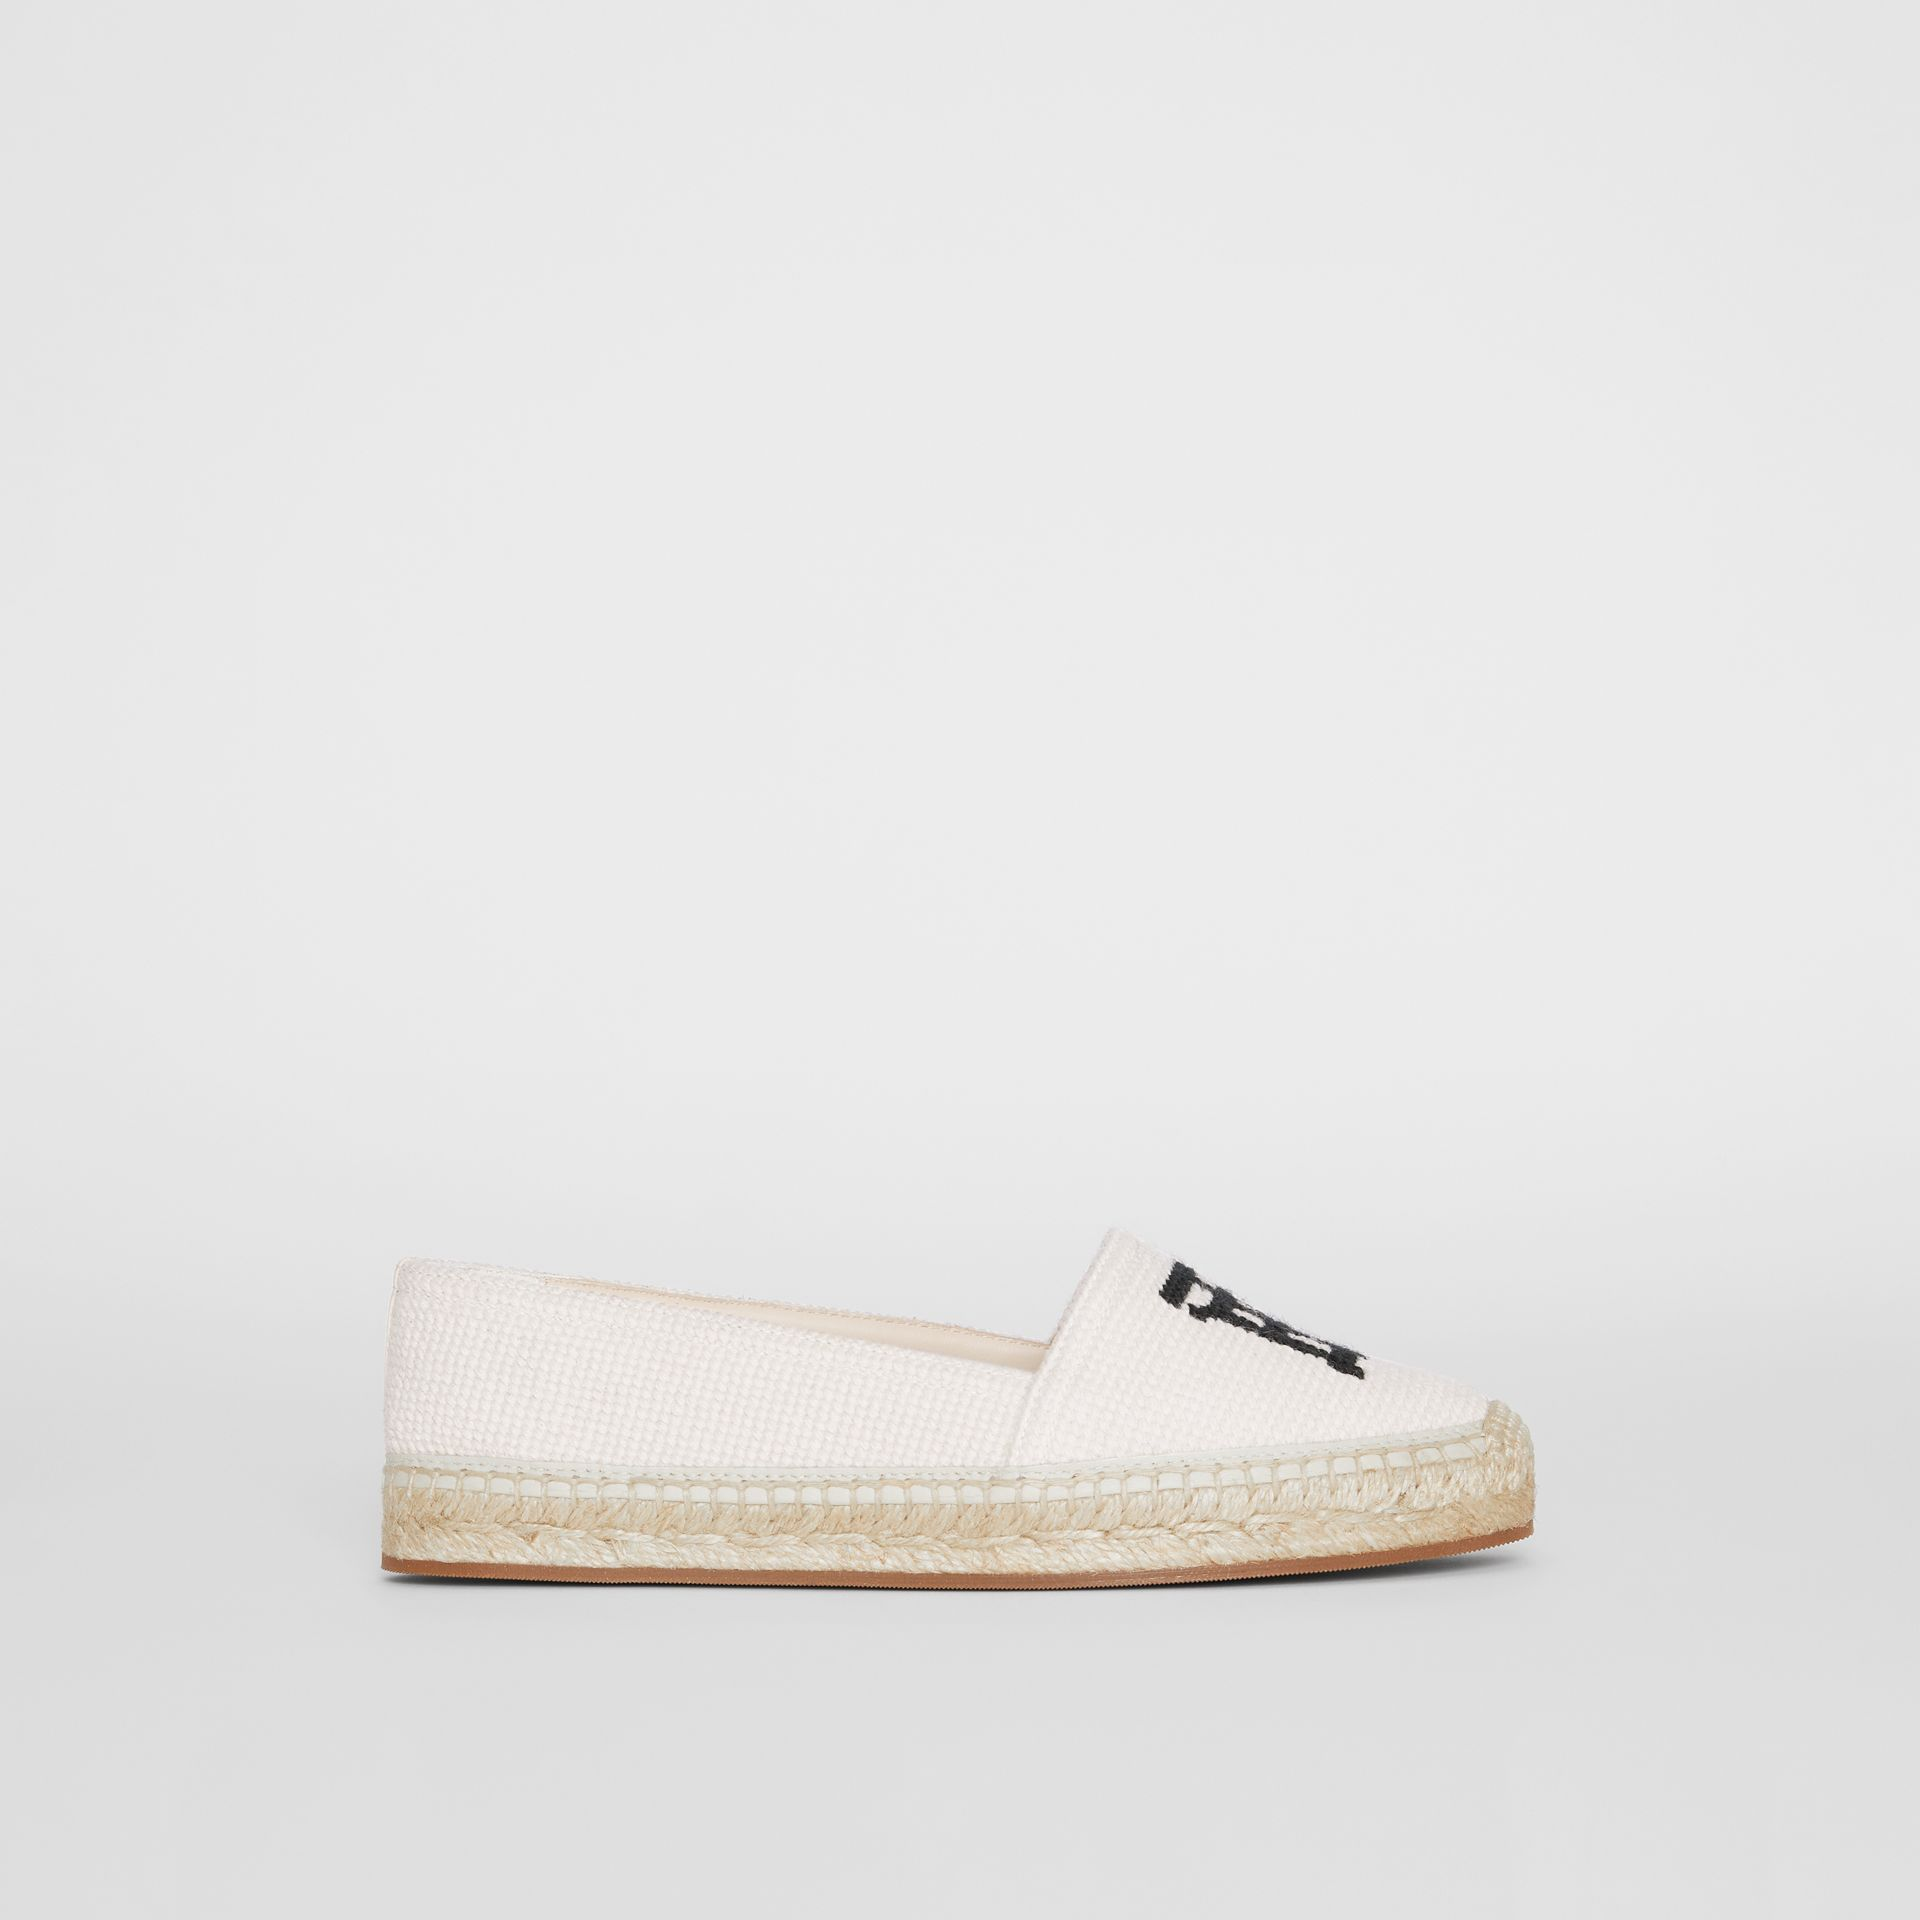 Monogram Motif Cotton and Leather Espadrilles in Ecru/black - Women | Burberry United Kingdom - gallery image 4